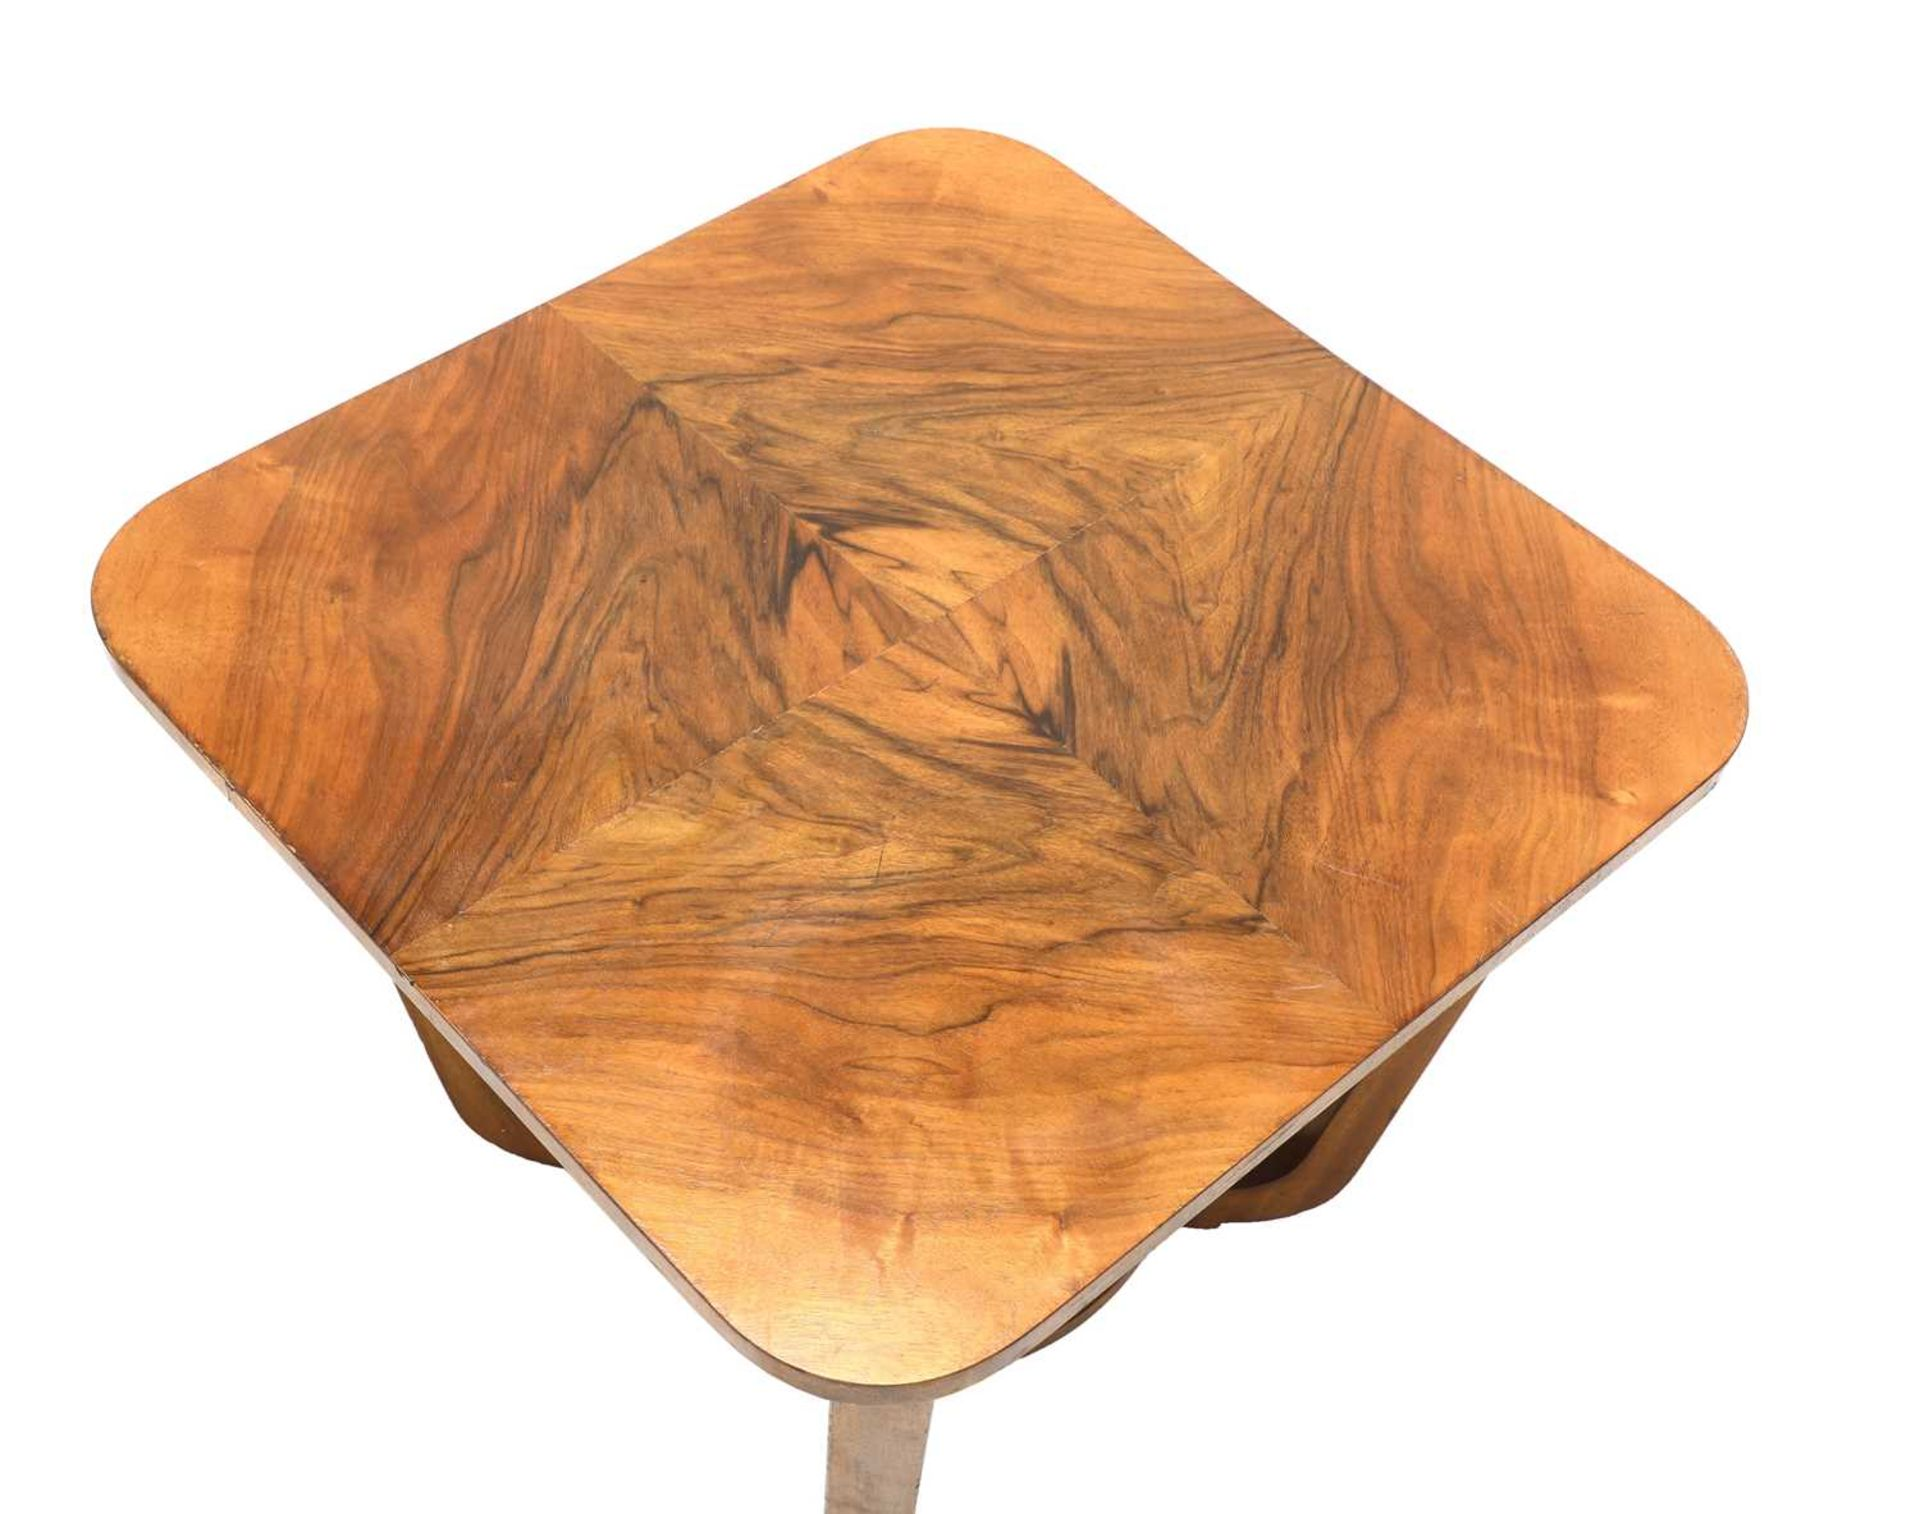 An Art Deco walnut table, - Image 3 of 3